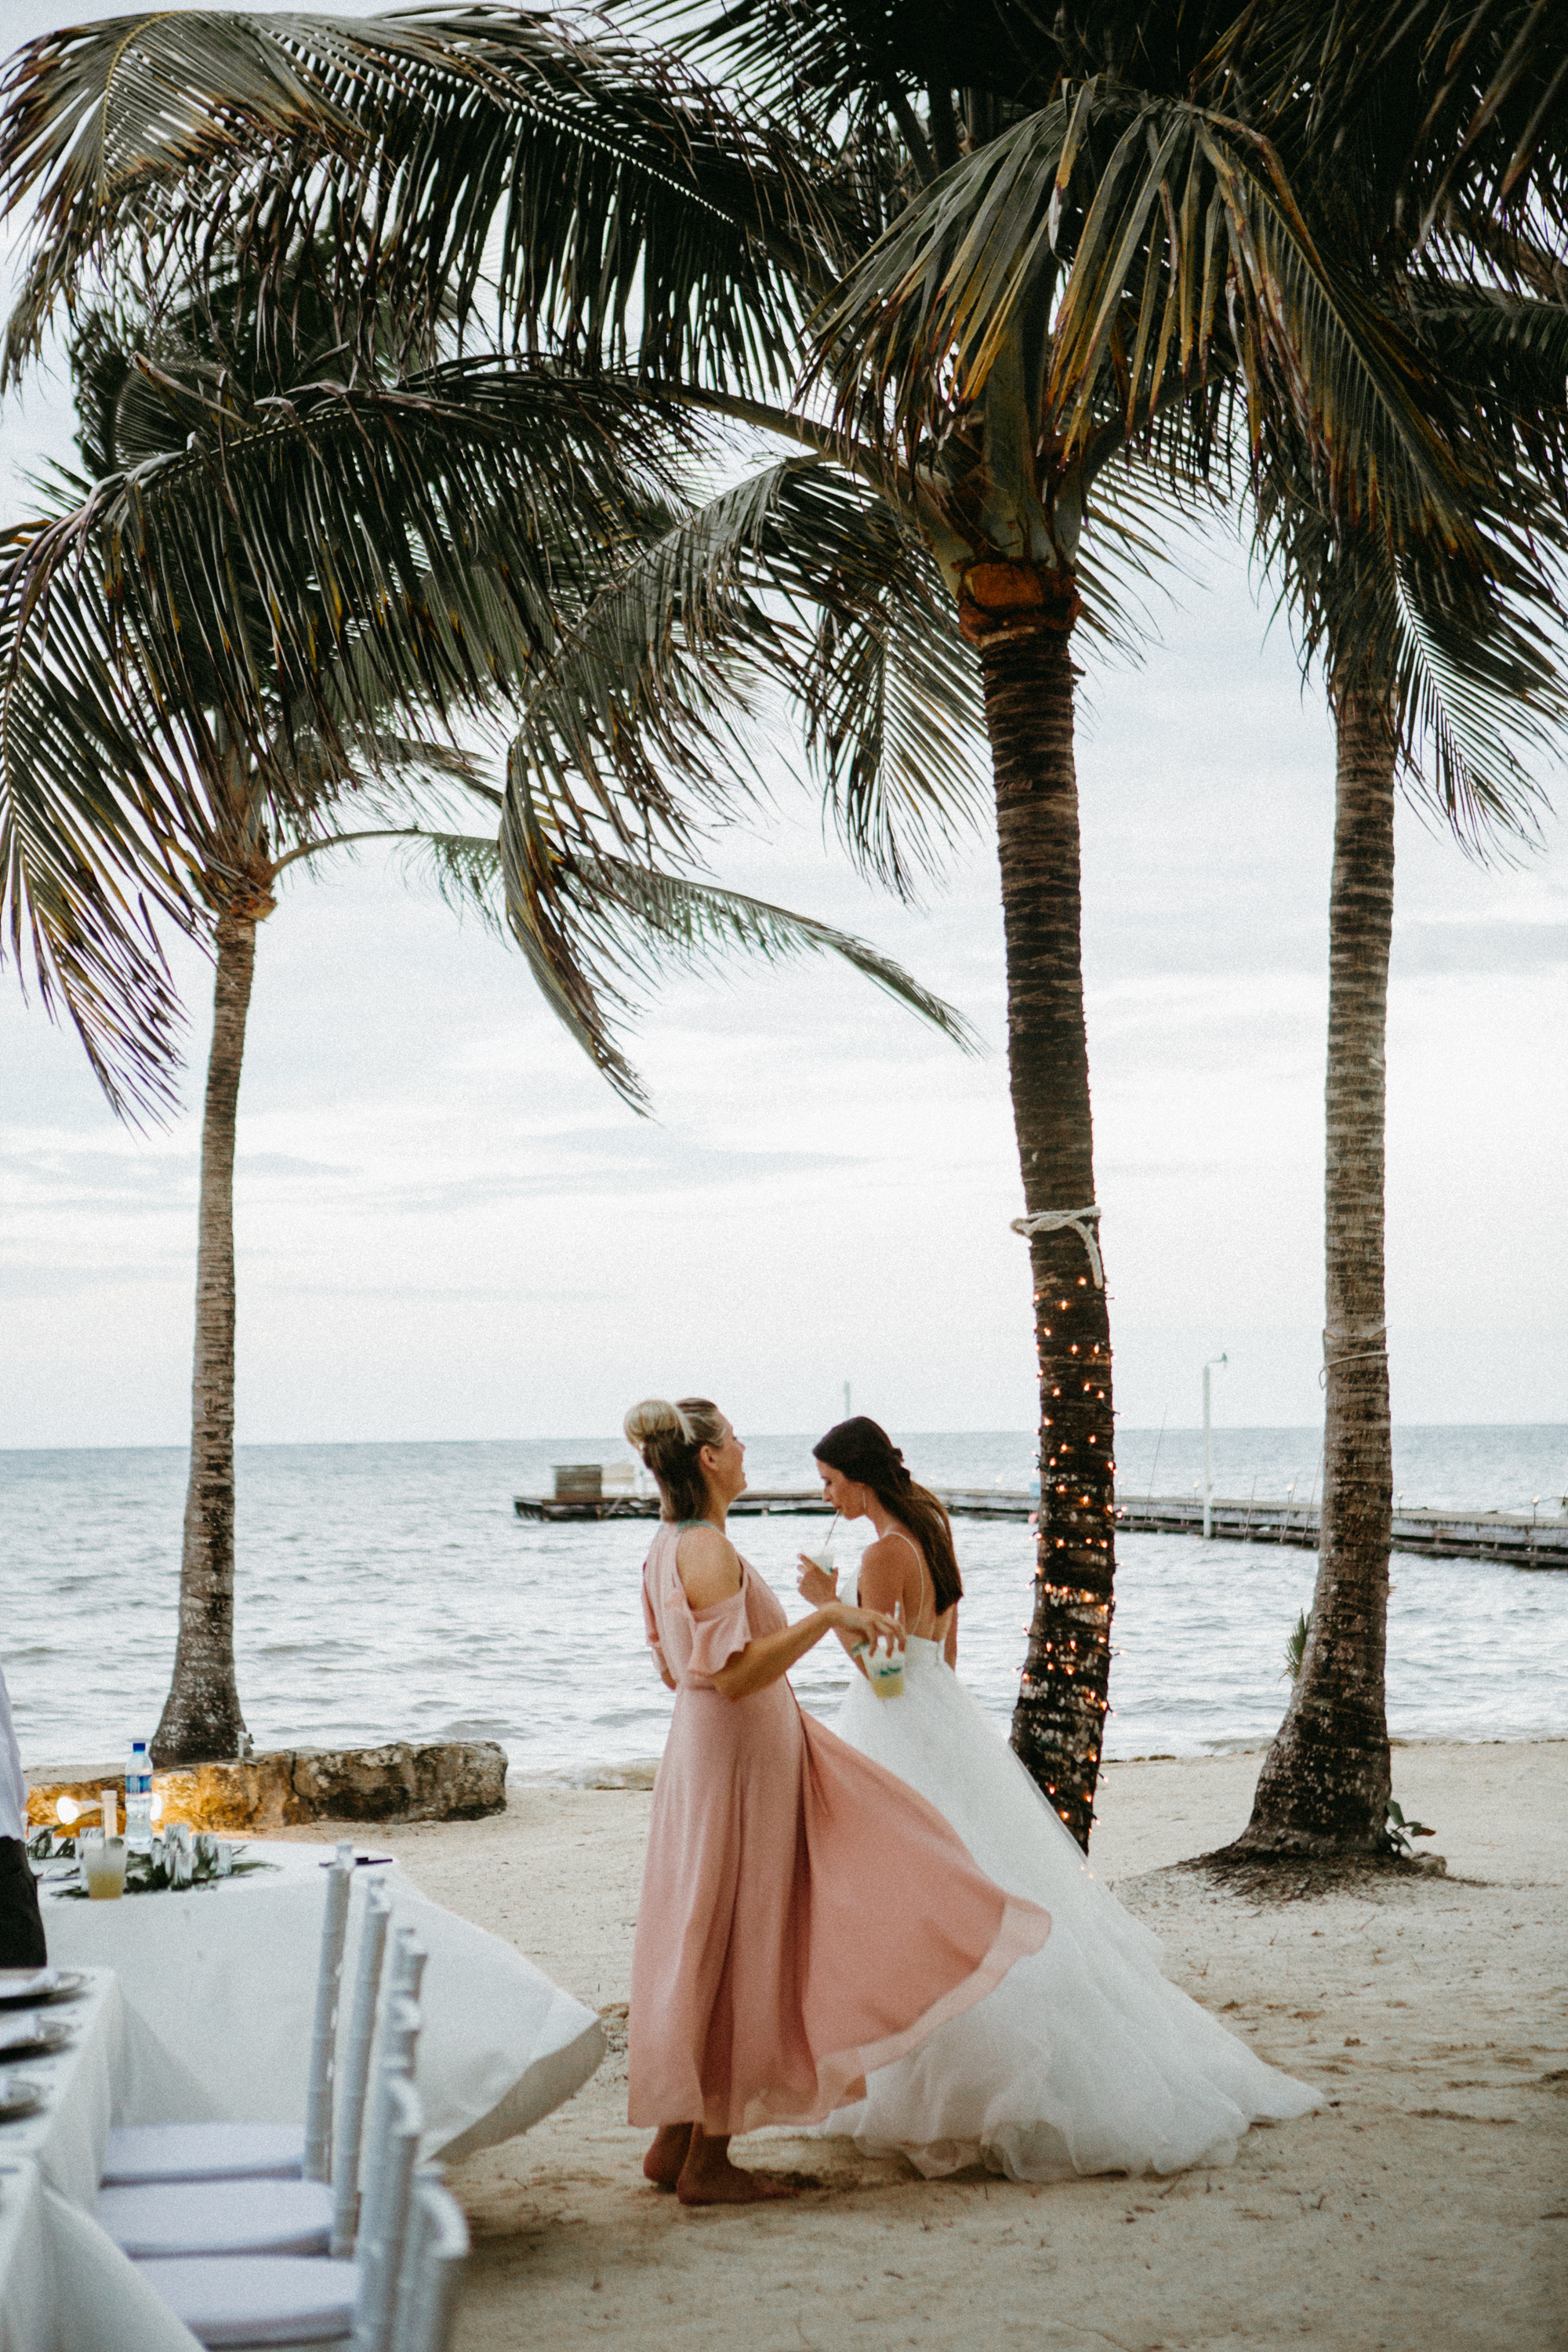 san-pescador-belize-wedding-christinemariephoto-j-k-119.jpg